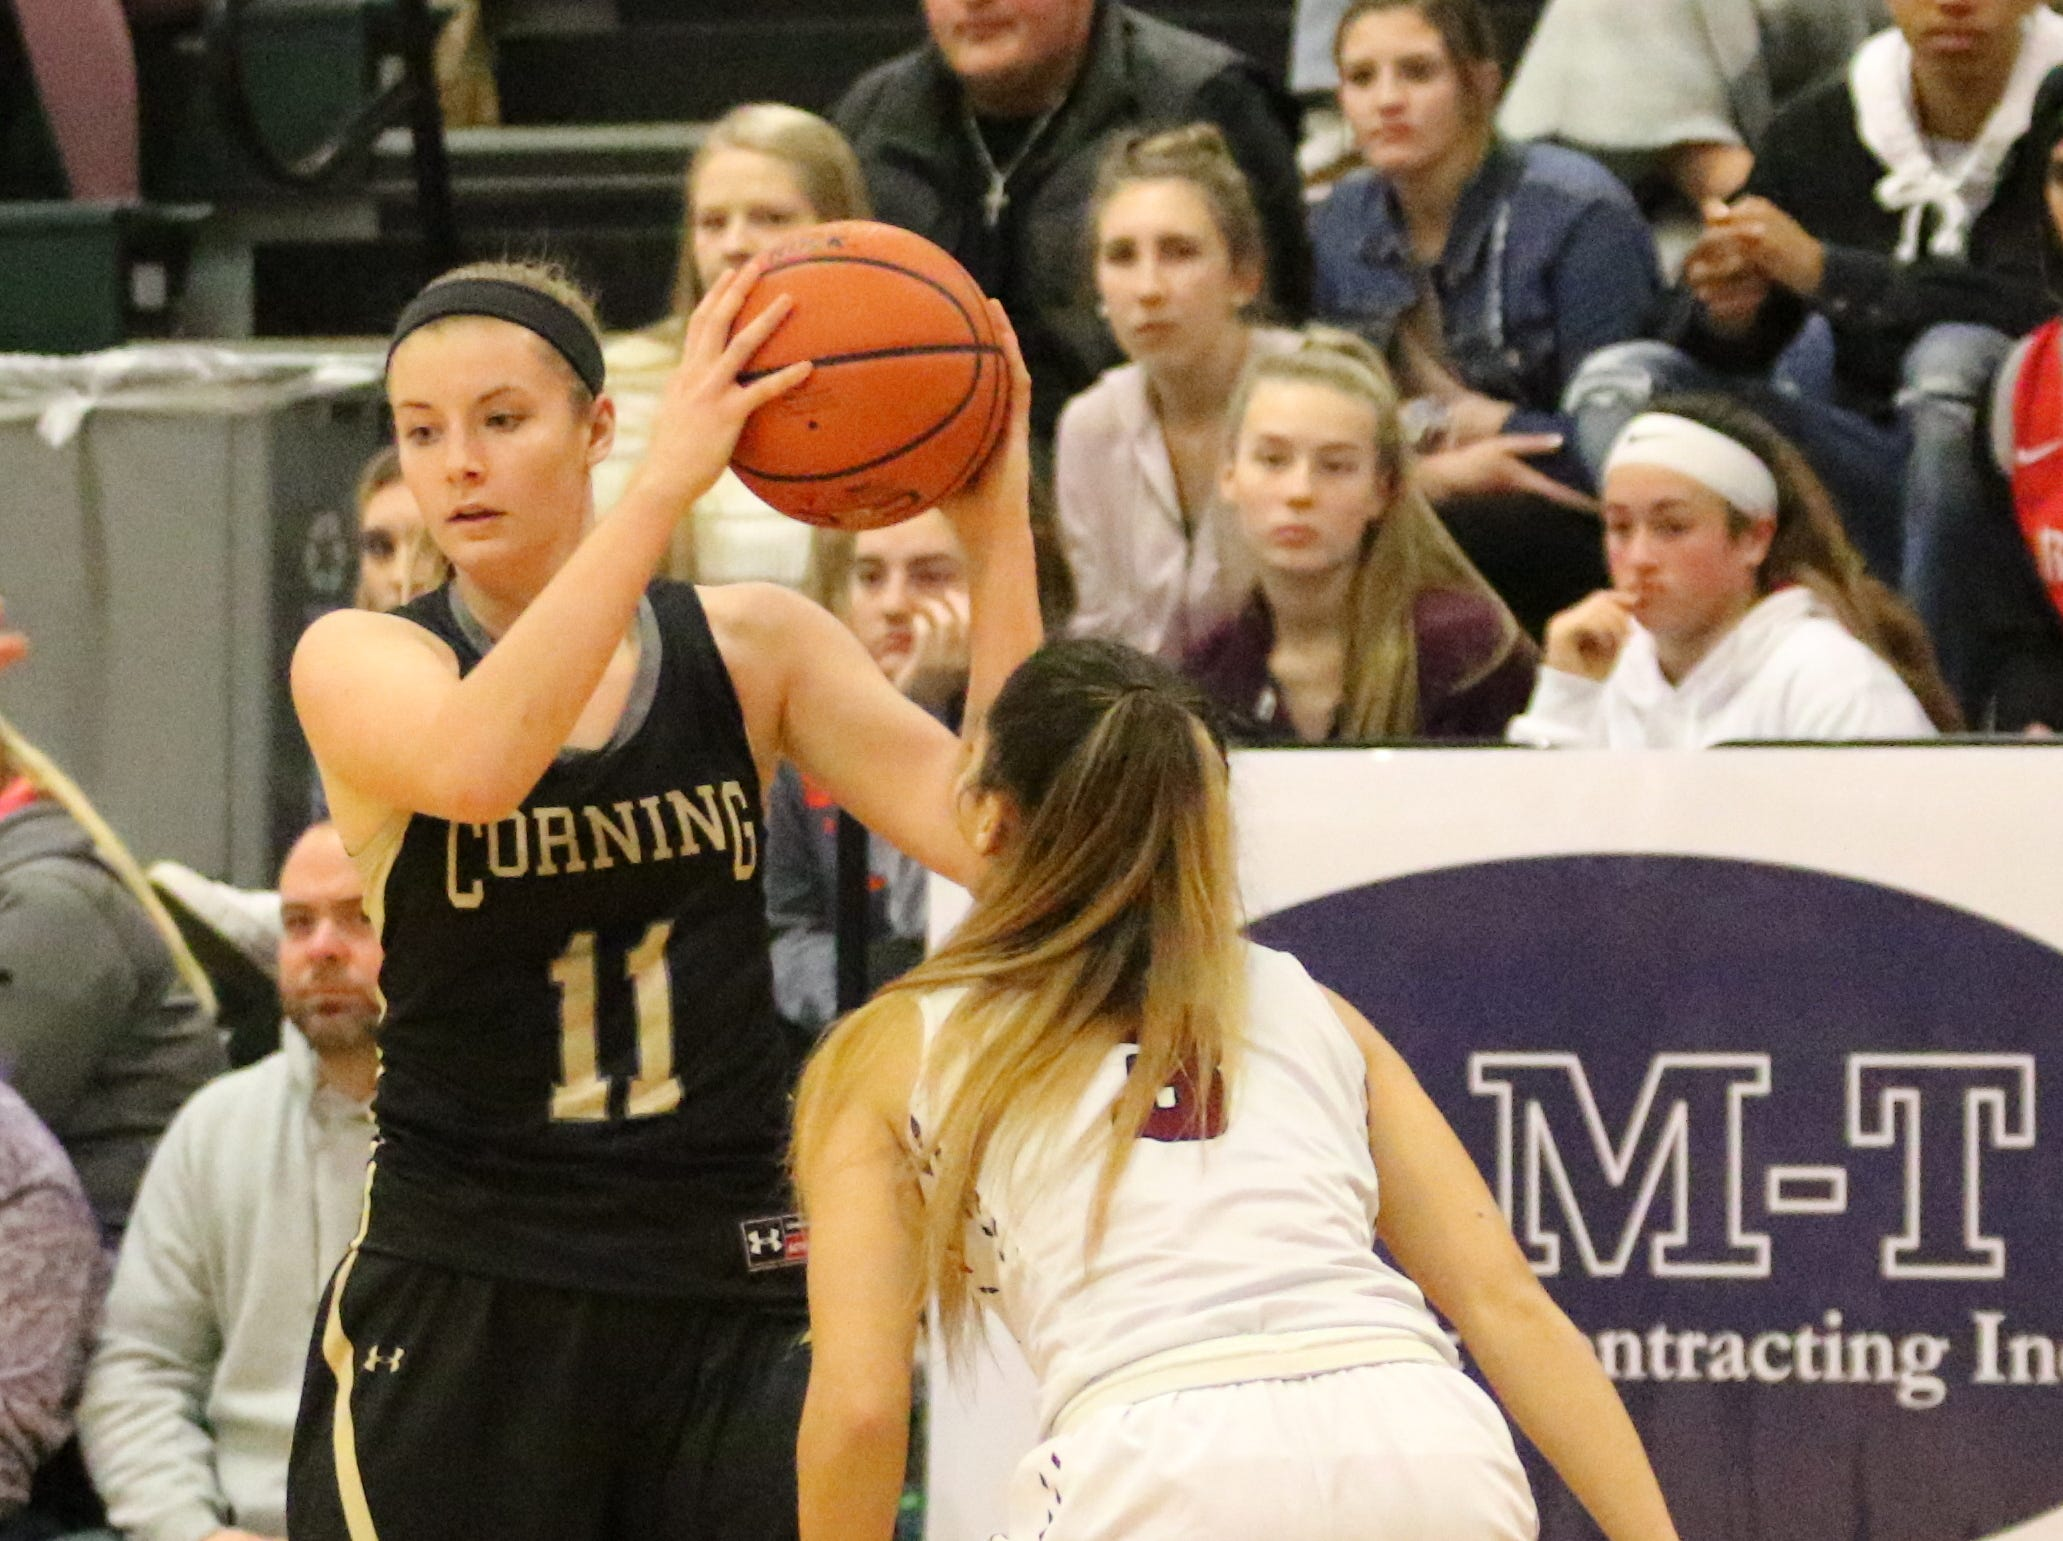 Corning takes on Elmira in a girls quarterfinal at the Josh Palmer Fund Elmira Holiday Inn Classic on Dec. 27, 2018 at Elmira High School.